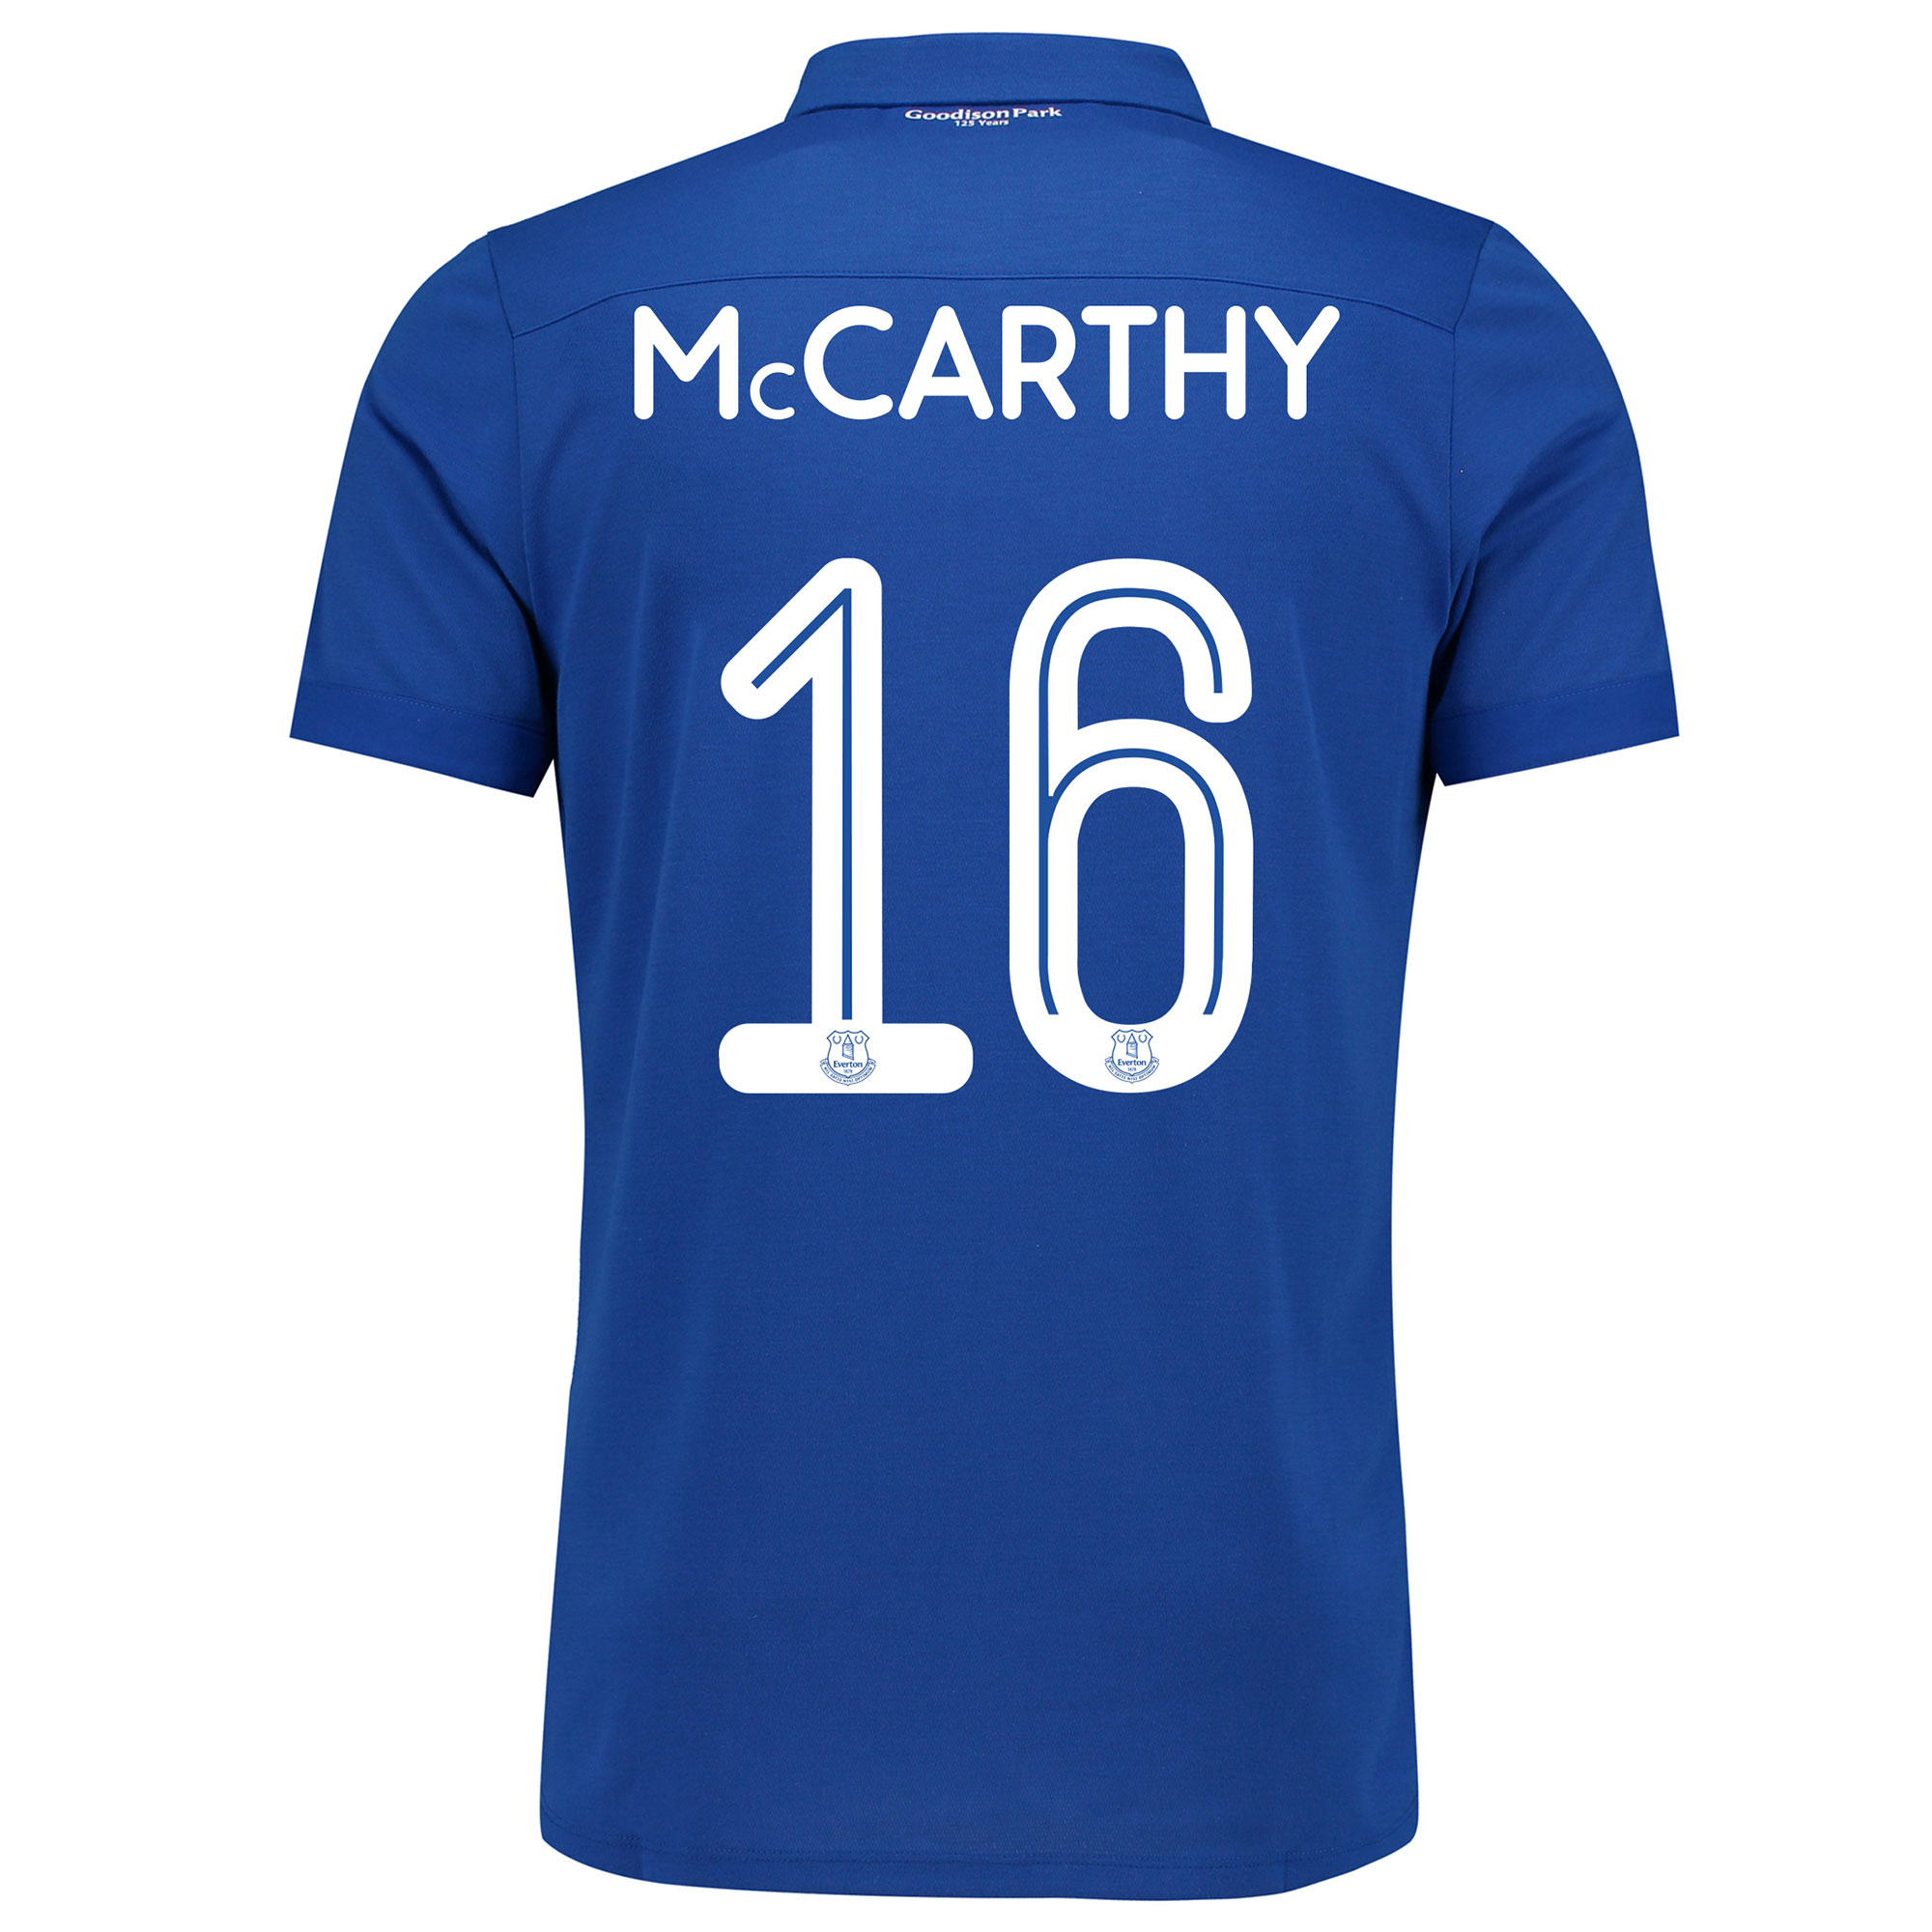 Image of Everton Commemorative Shirt with McCarthy 16 printing